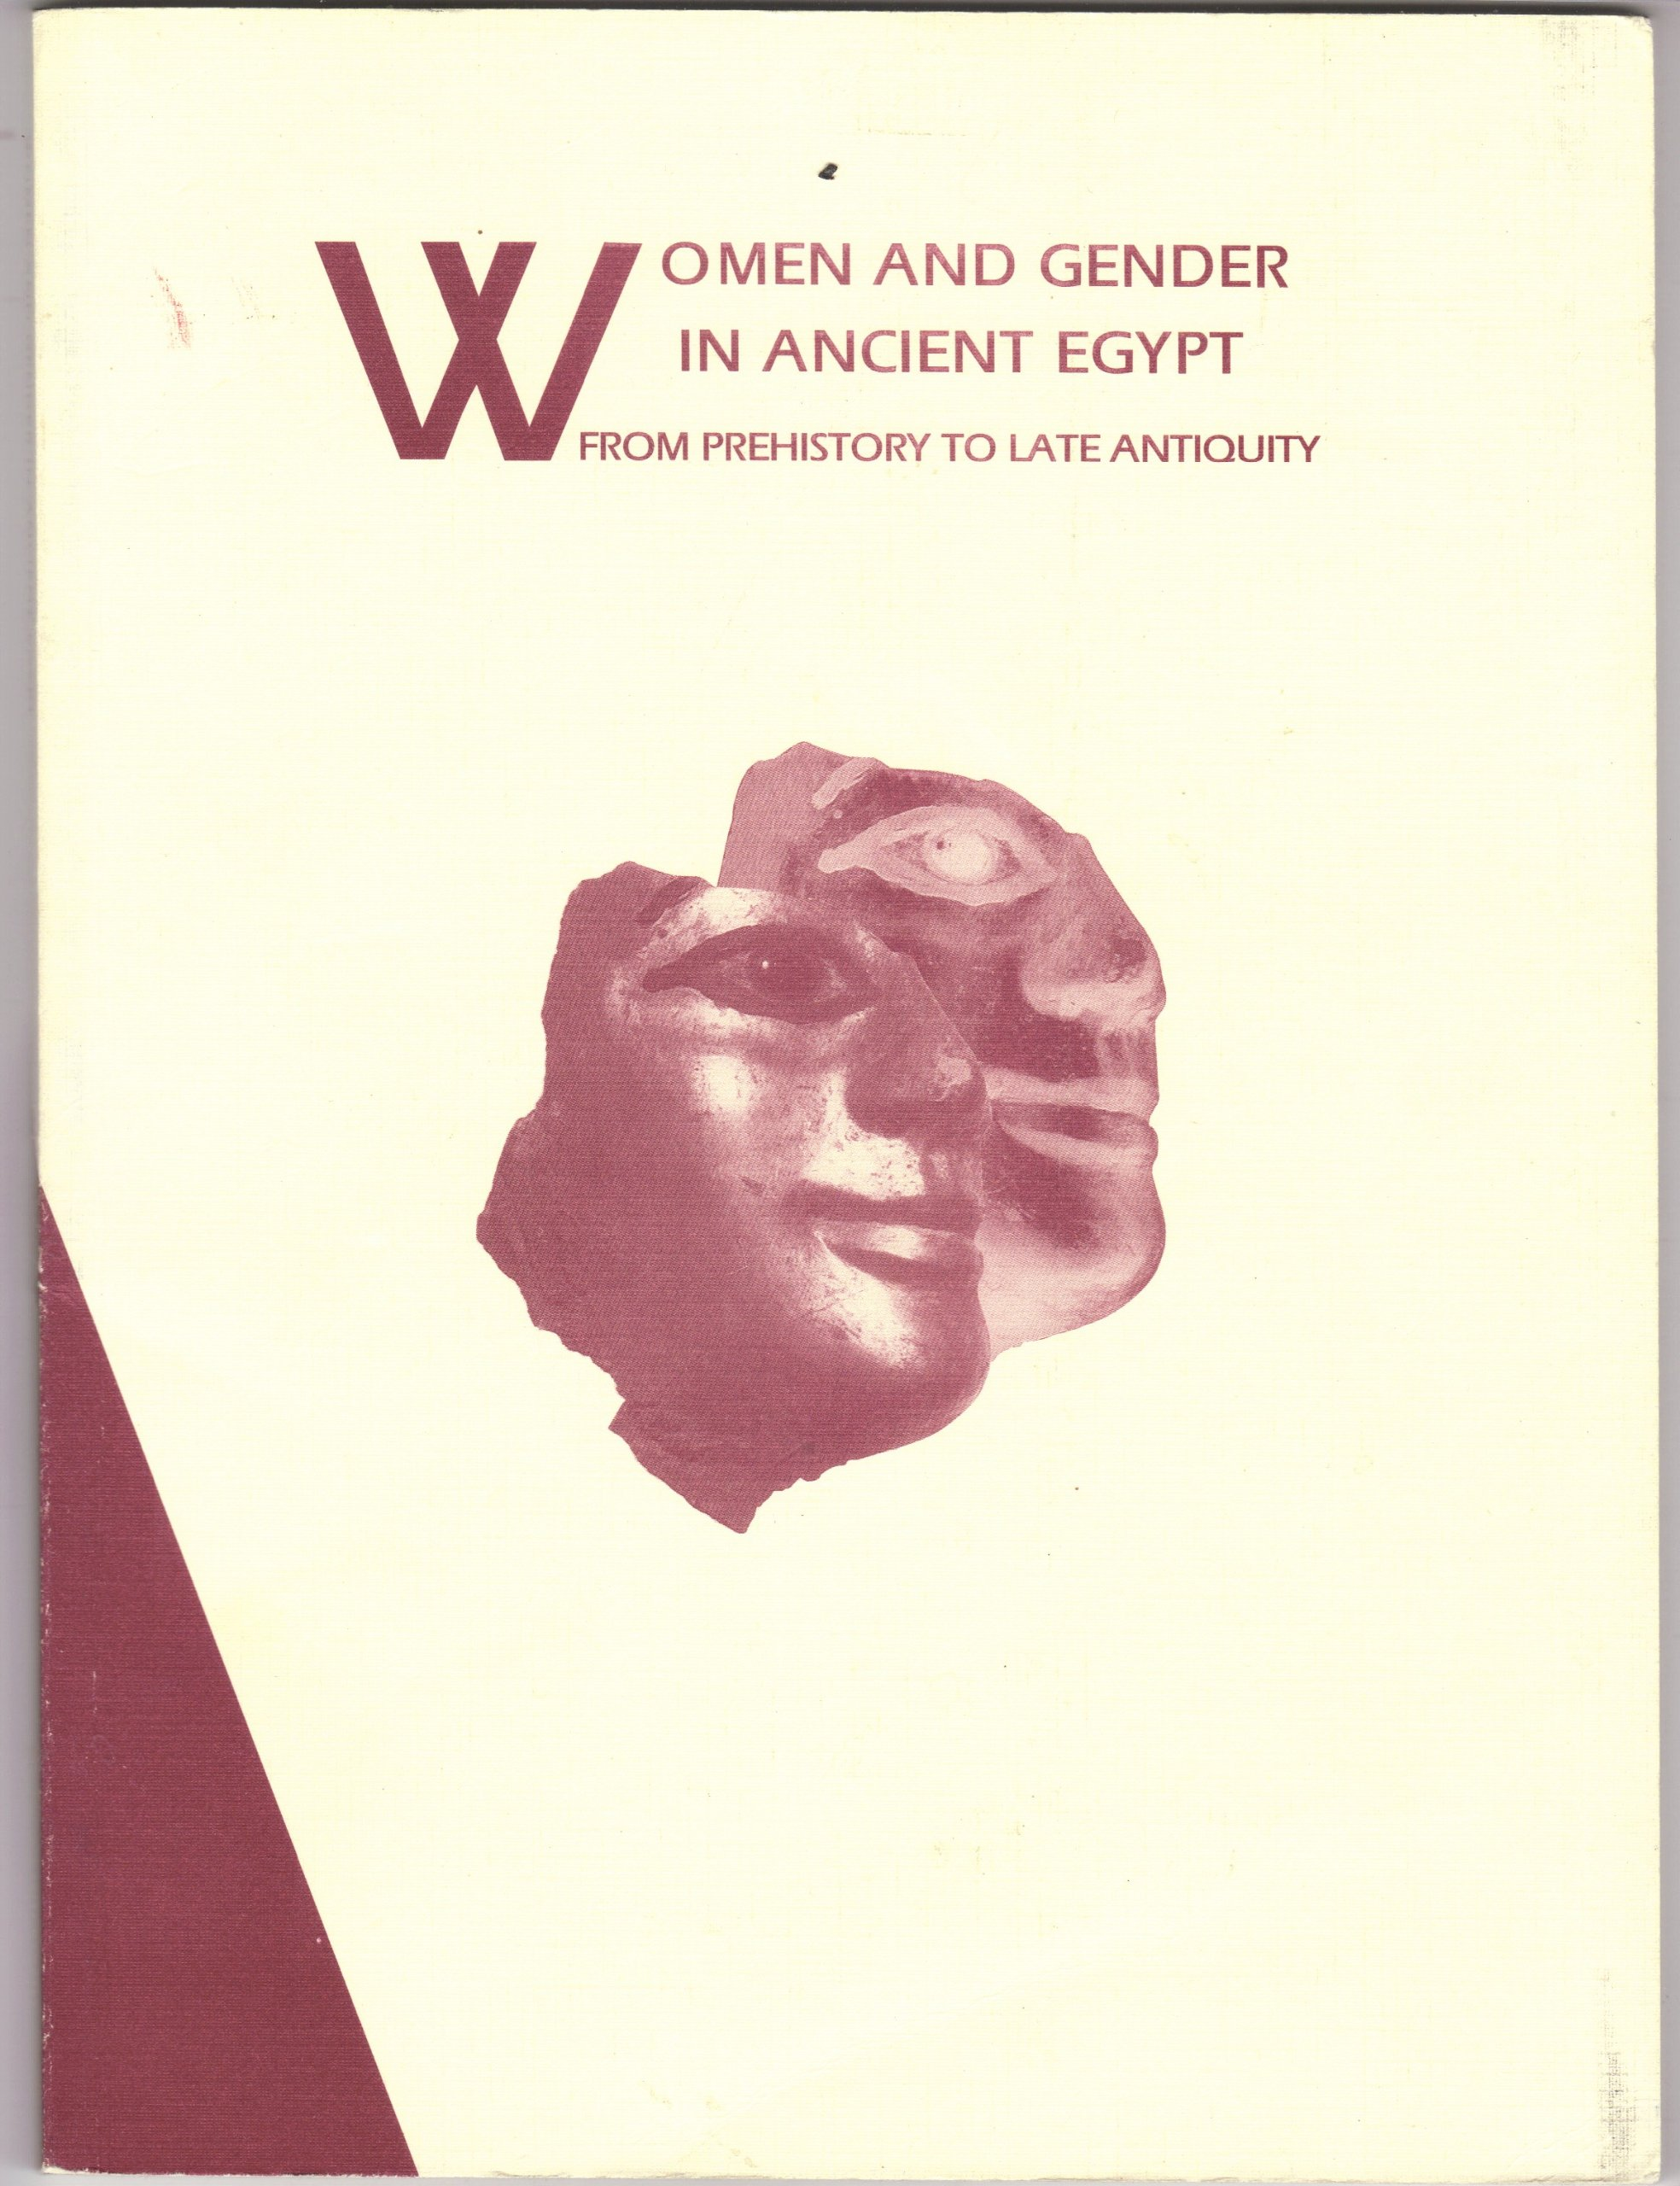 Women and Gender in Ancient Egypt: From Prehistory to Late Antiquity